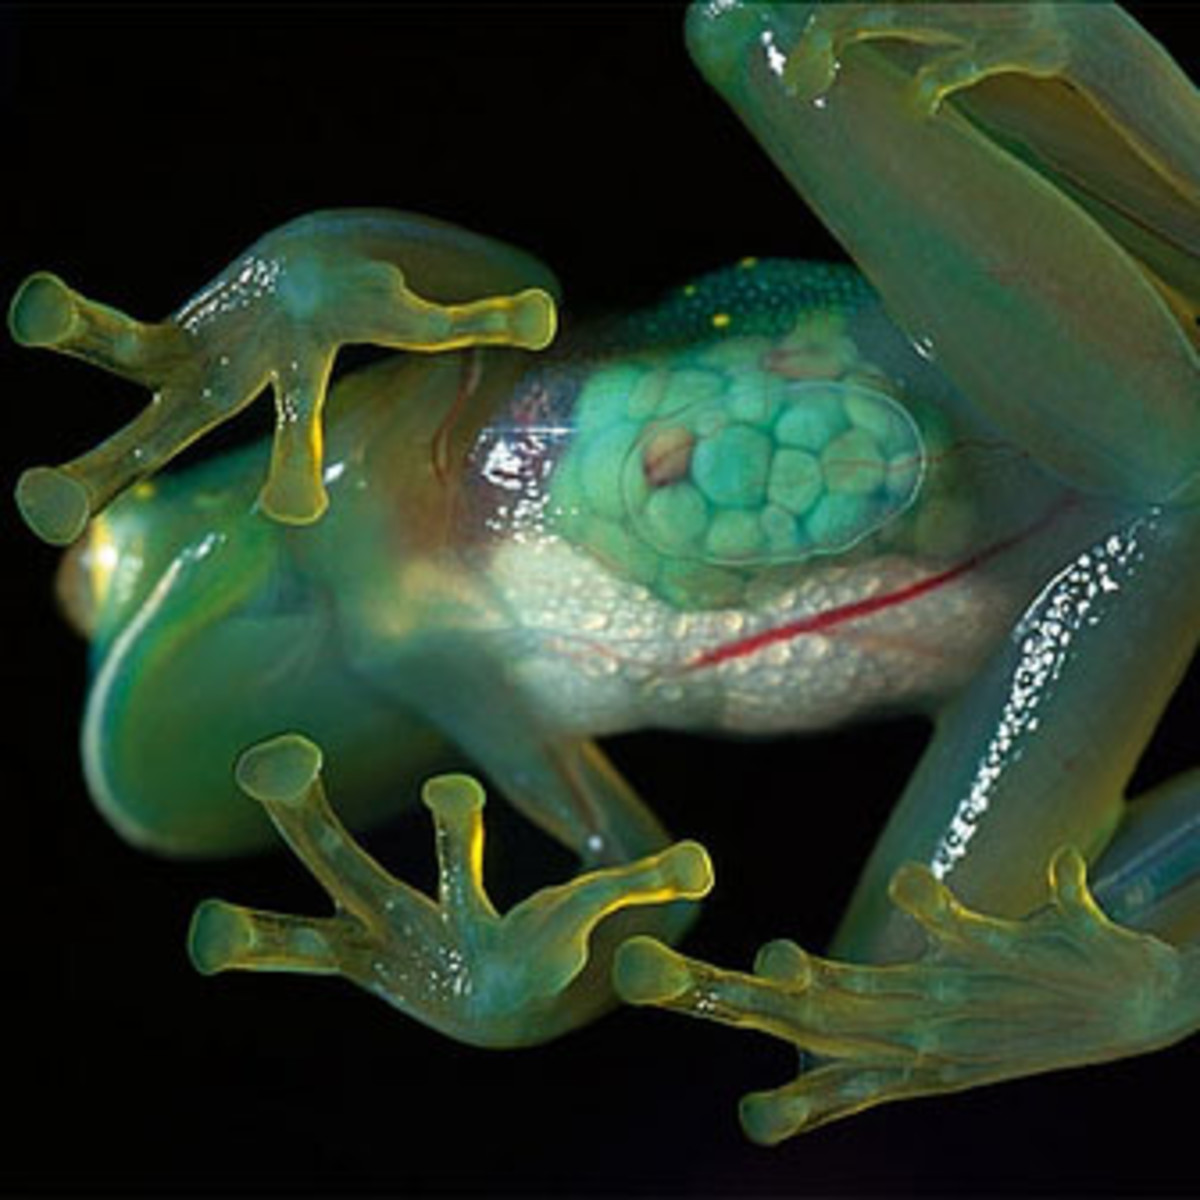 Here you can clearly see the internal organs of a glass frog through its transparent skin.